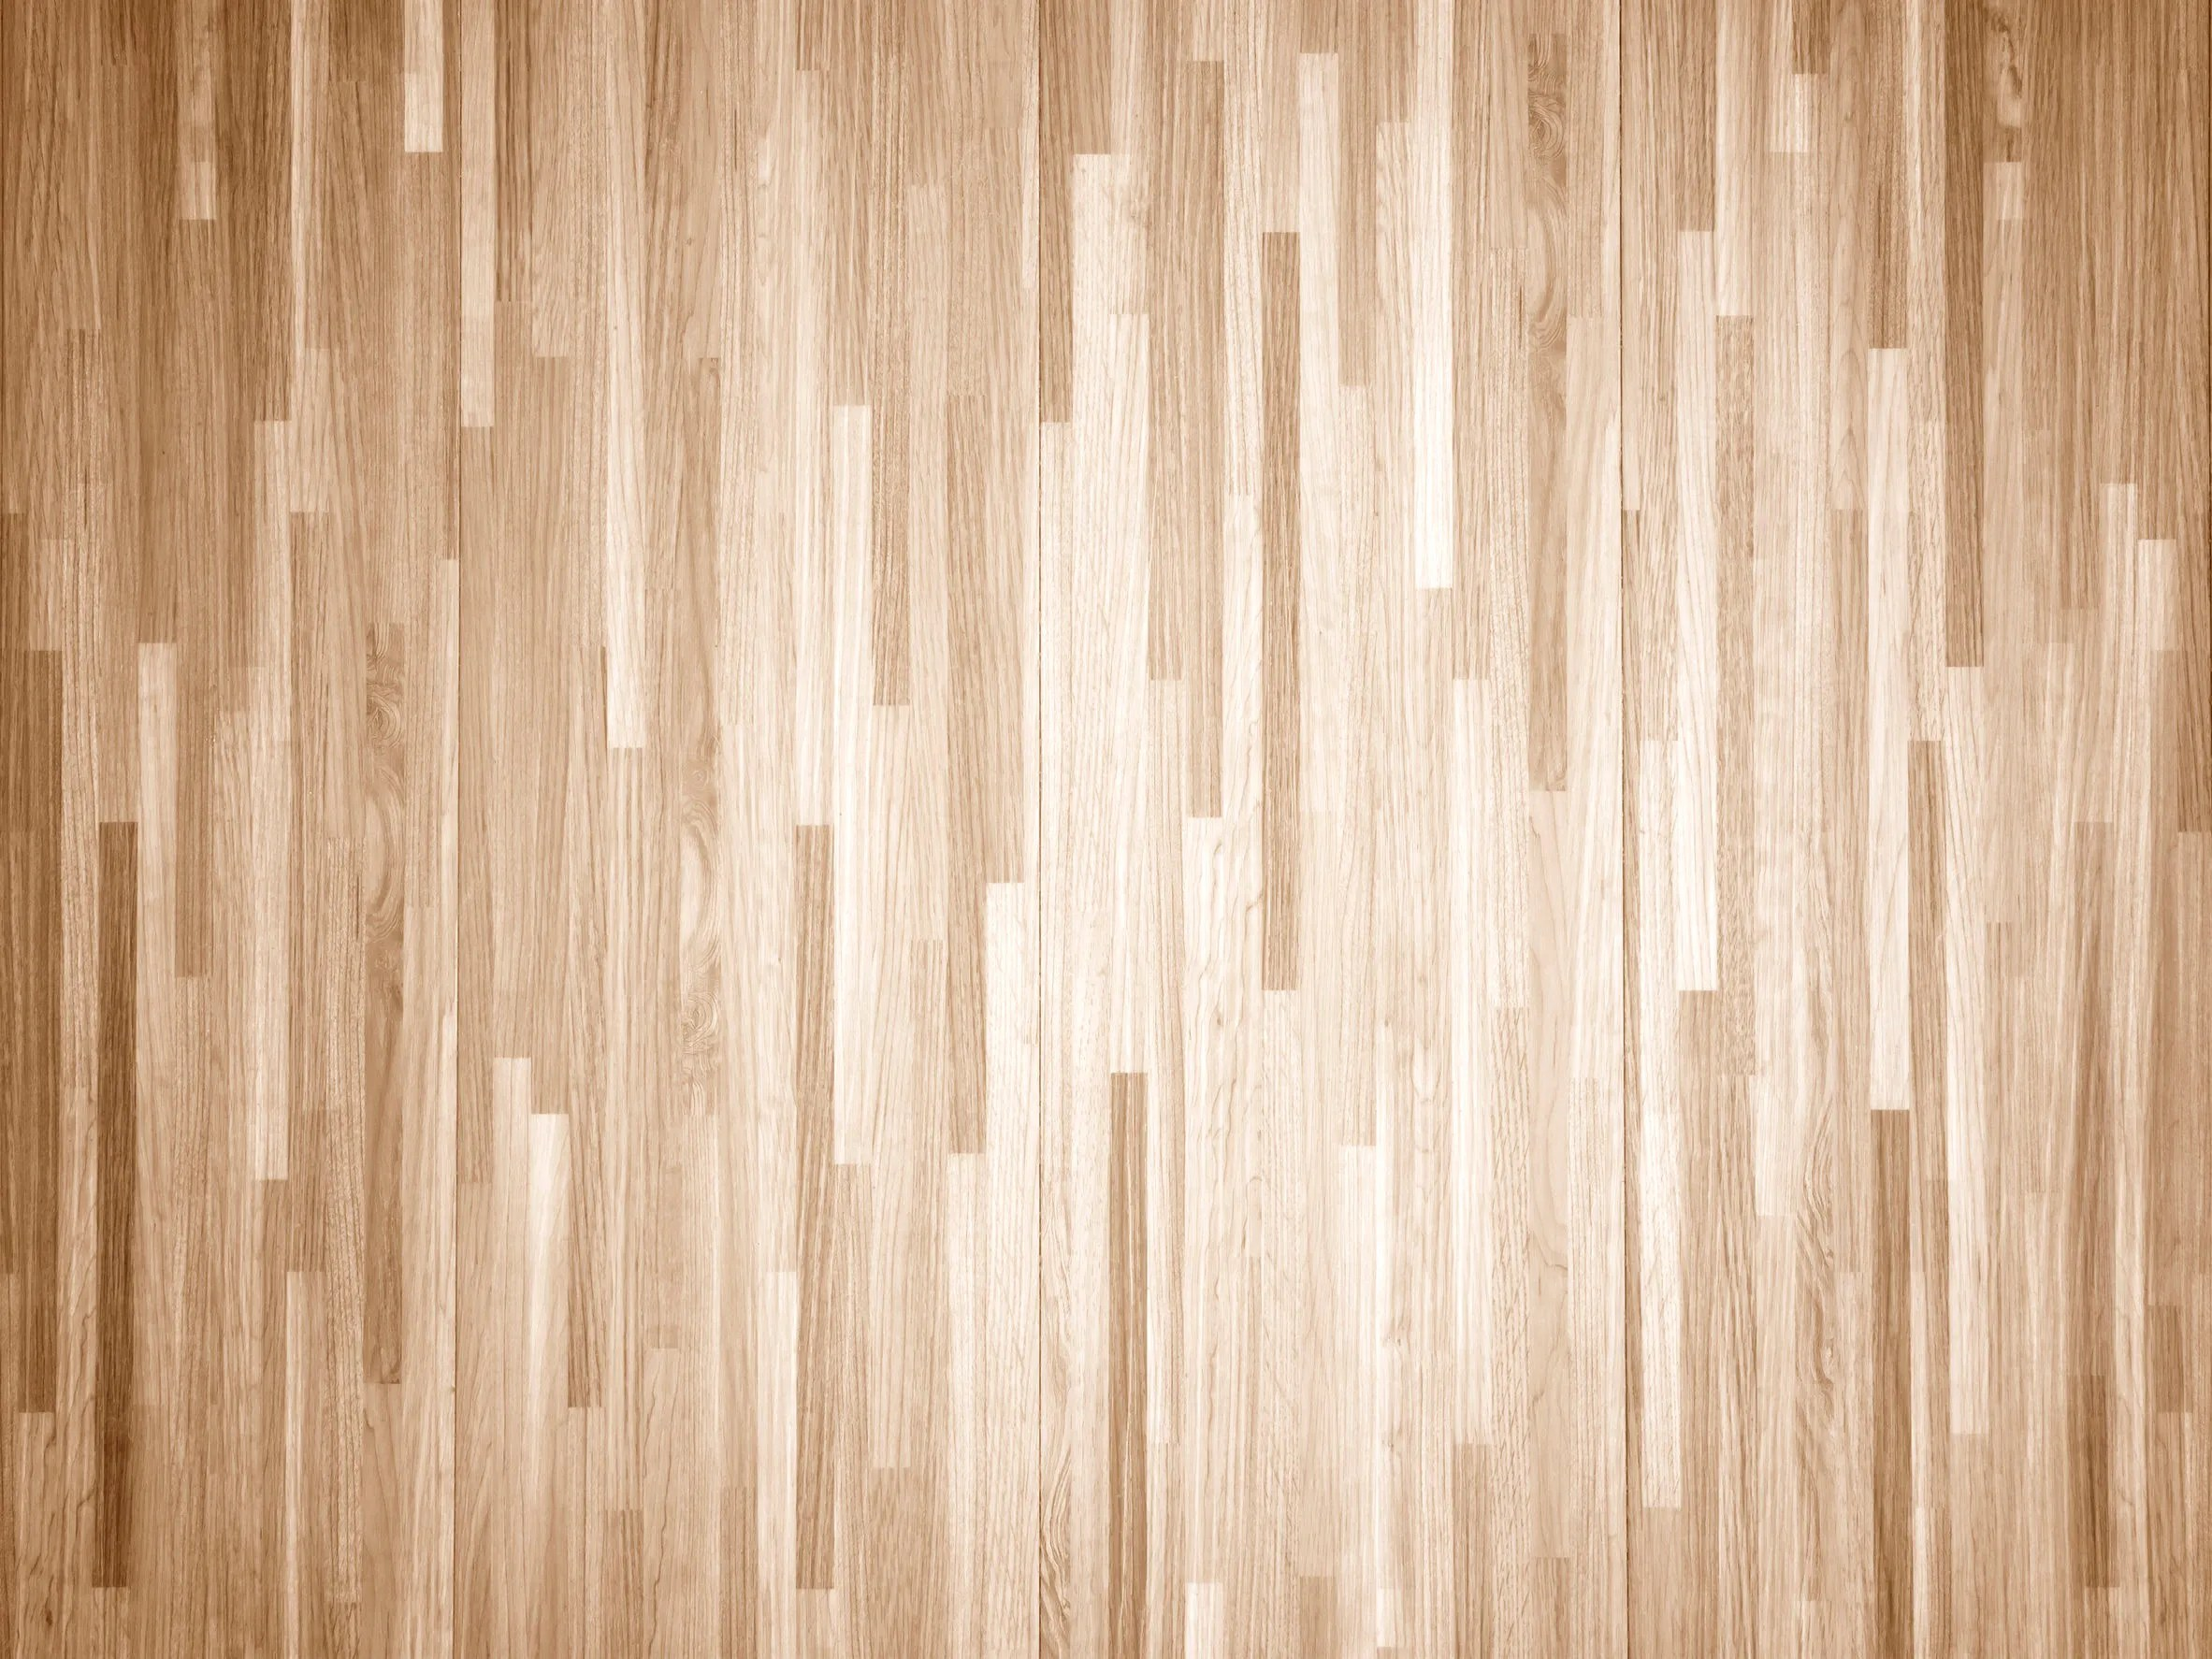 how to chemically strip wood floors